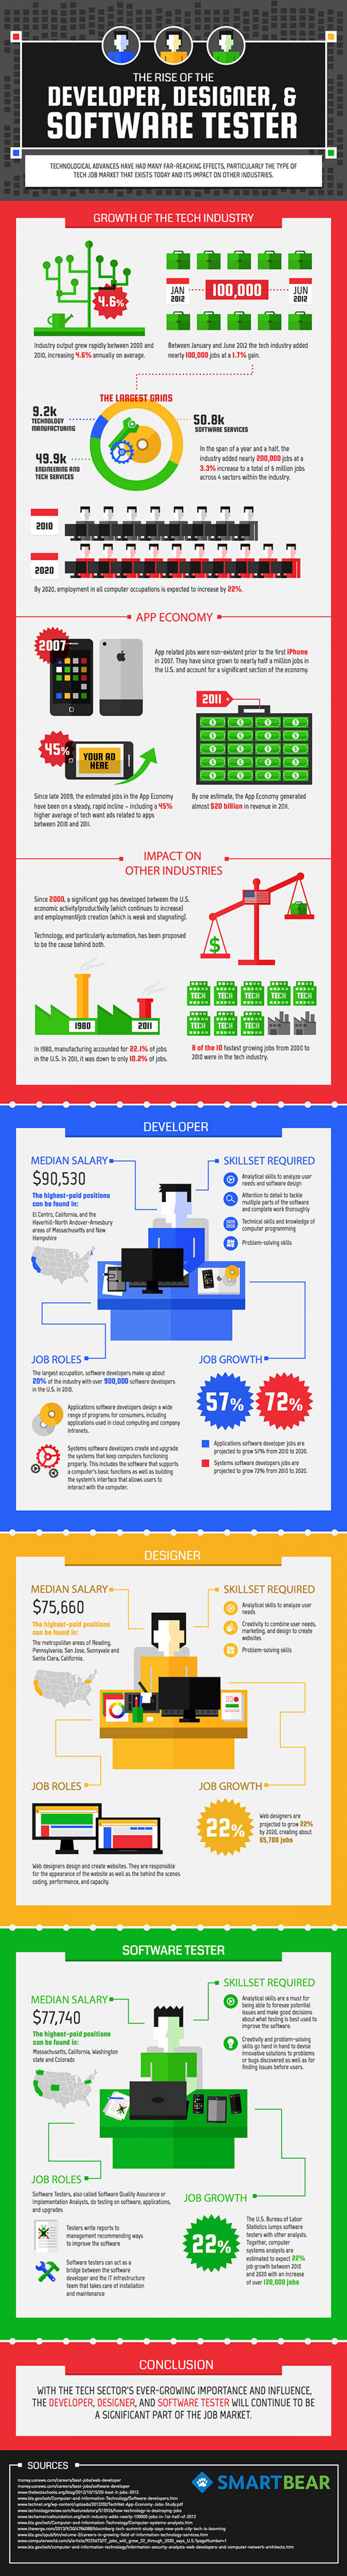 The Rise of The Developer, Designer, and Software Tester Infographic